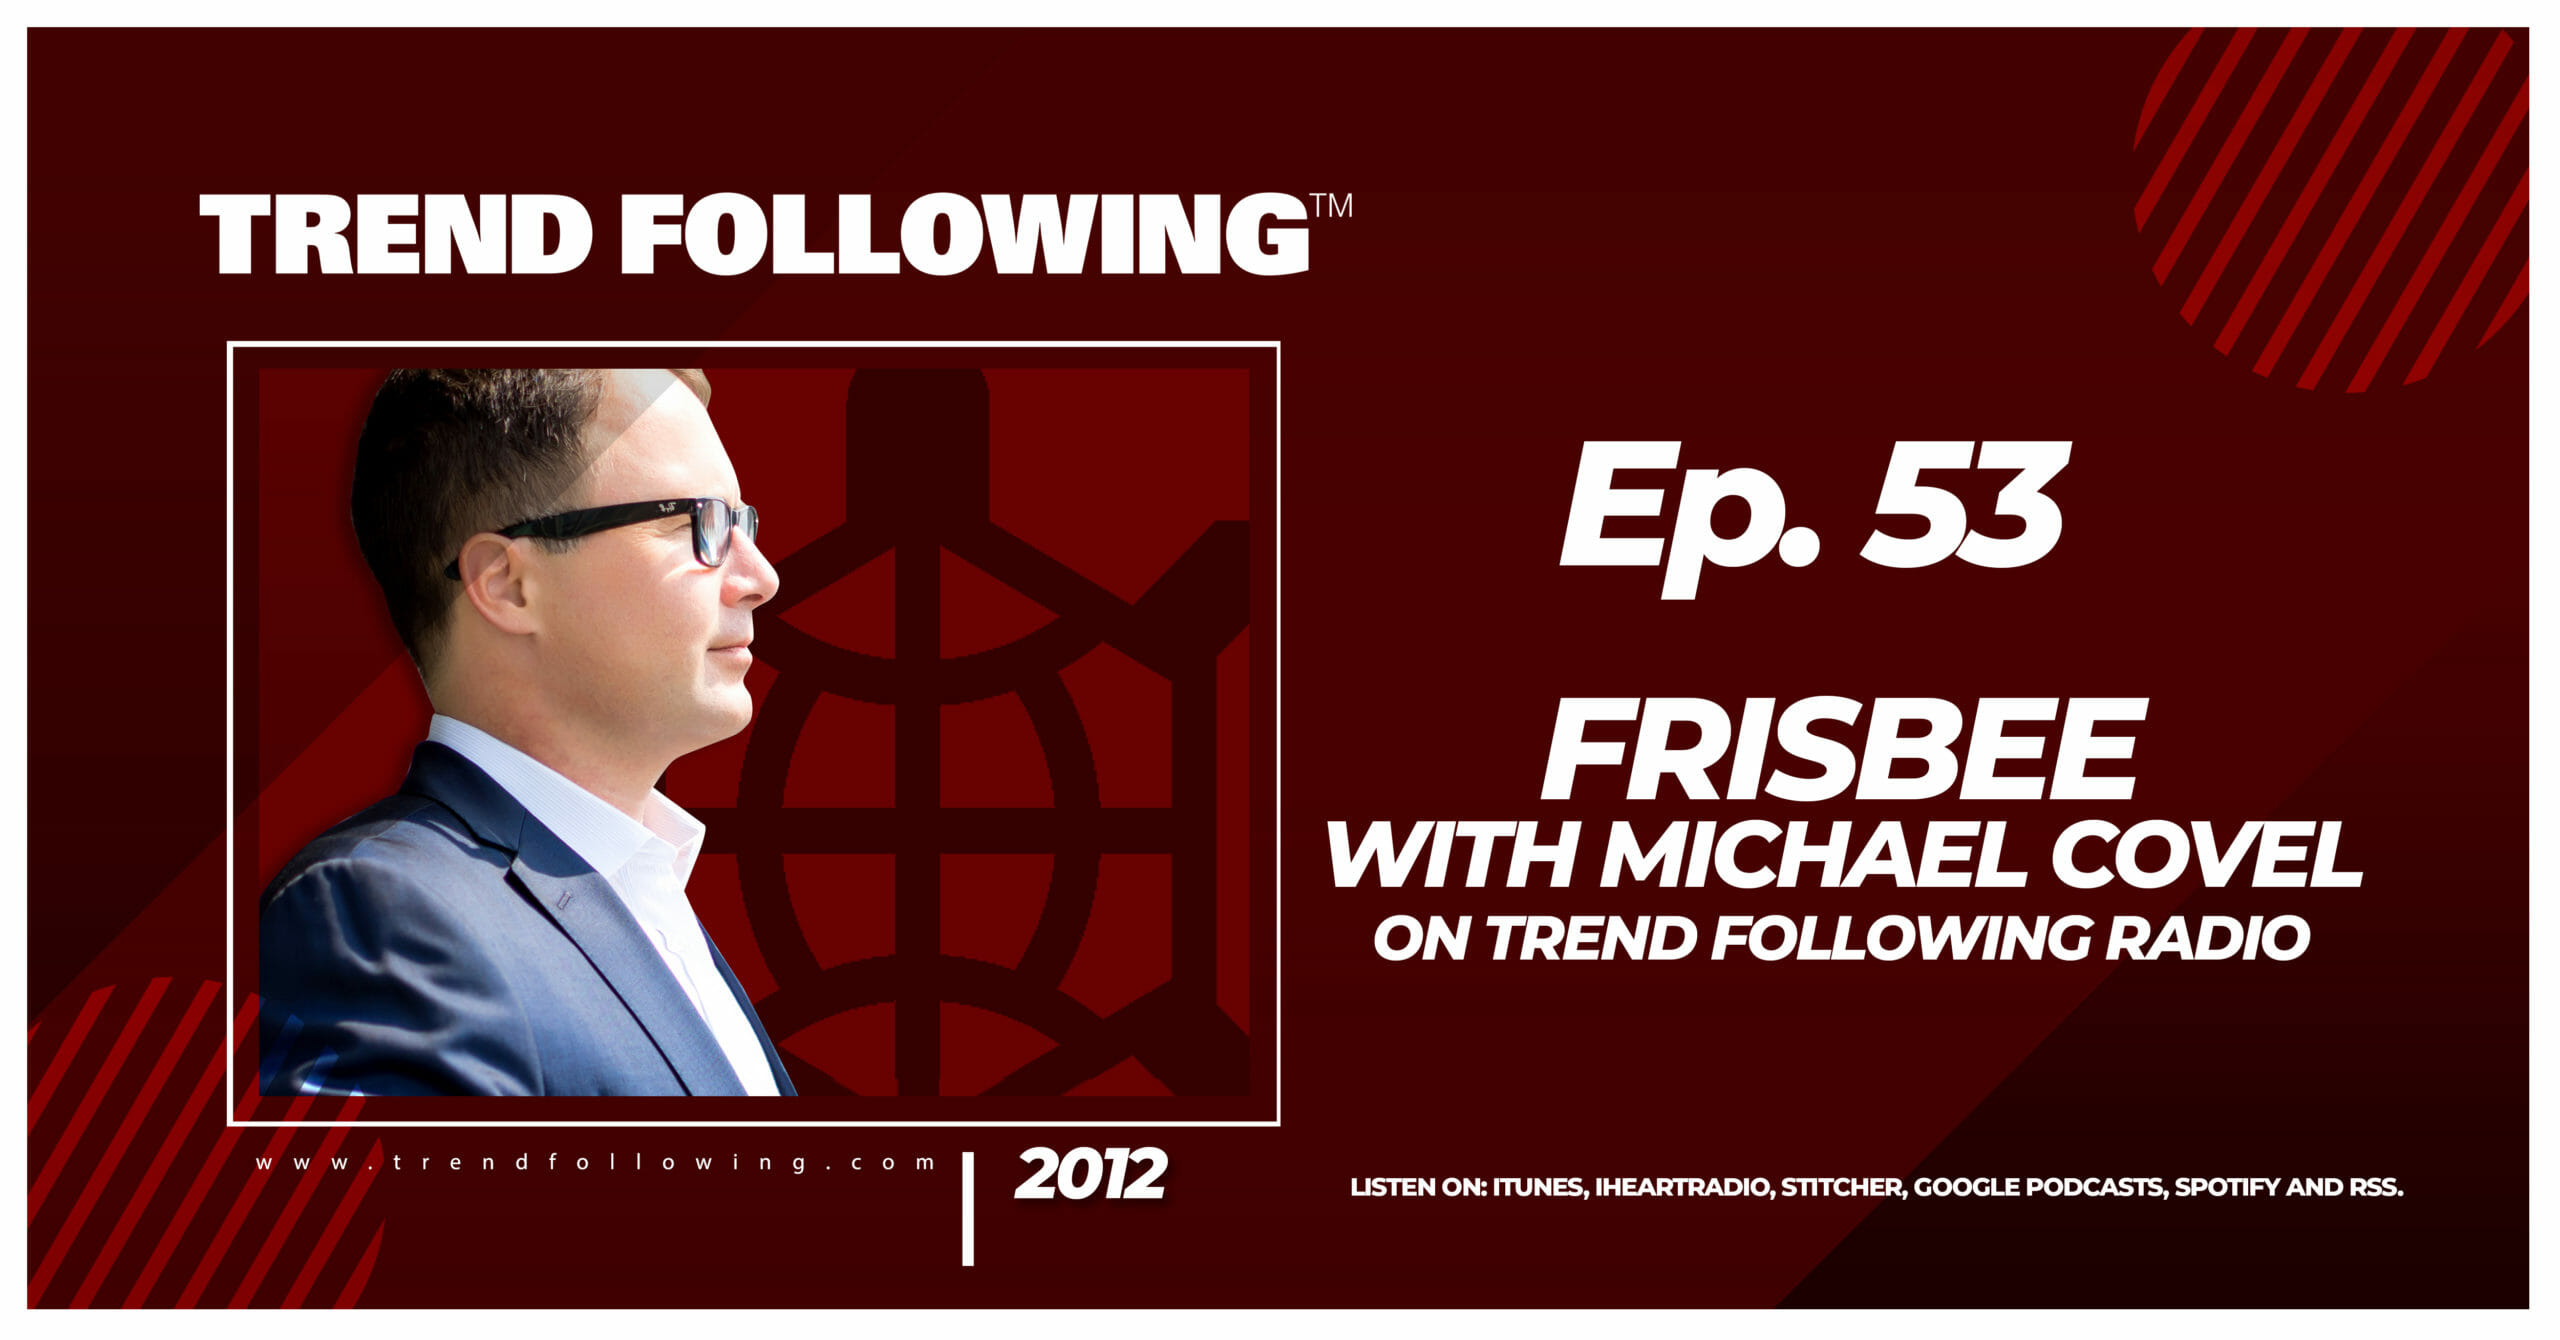 Frisbee with Michael Covel on Trend Following Radio